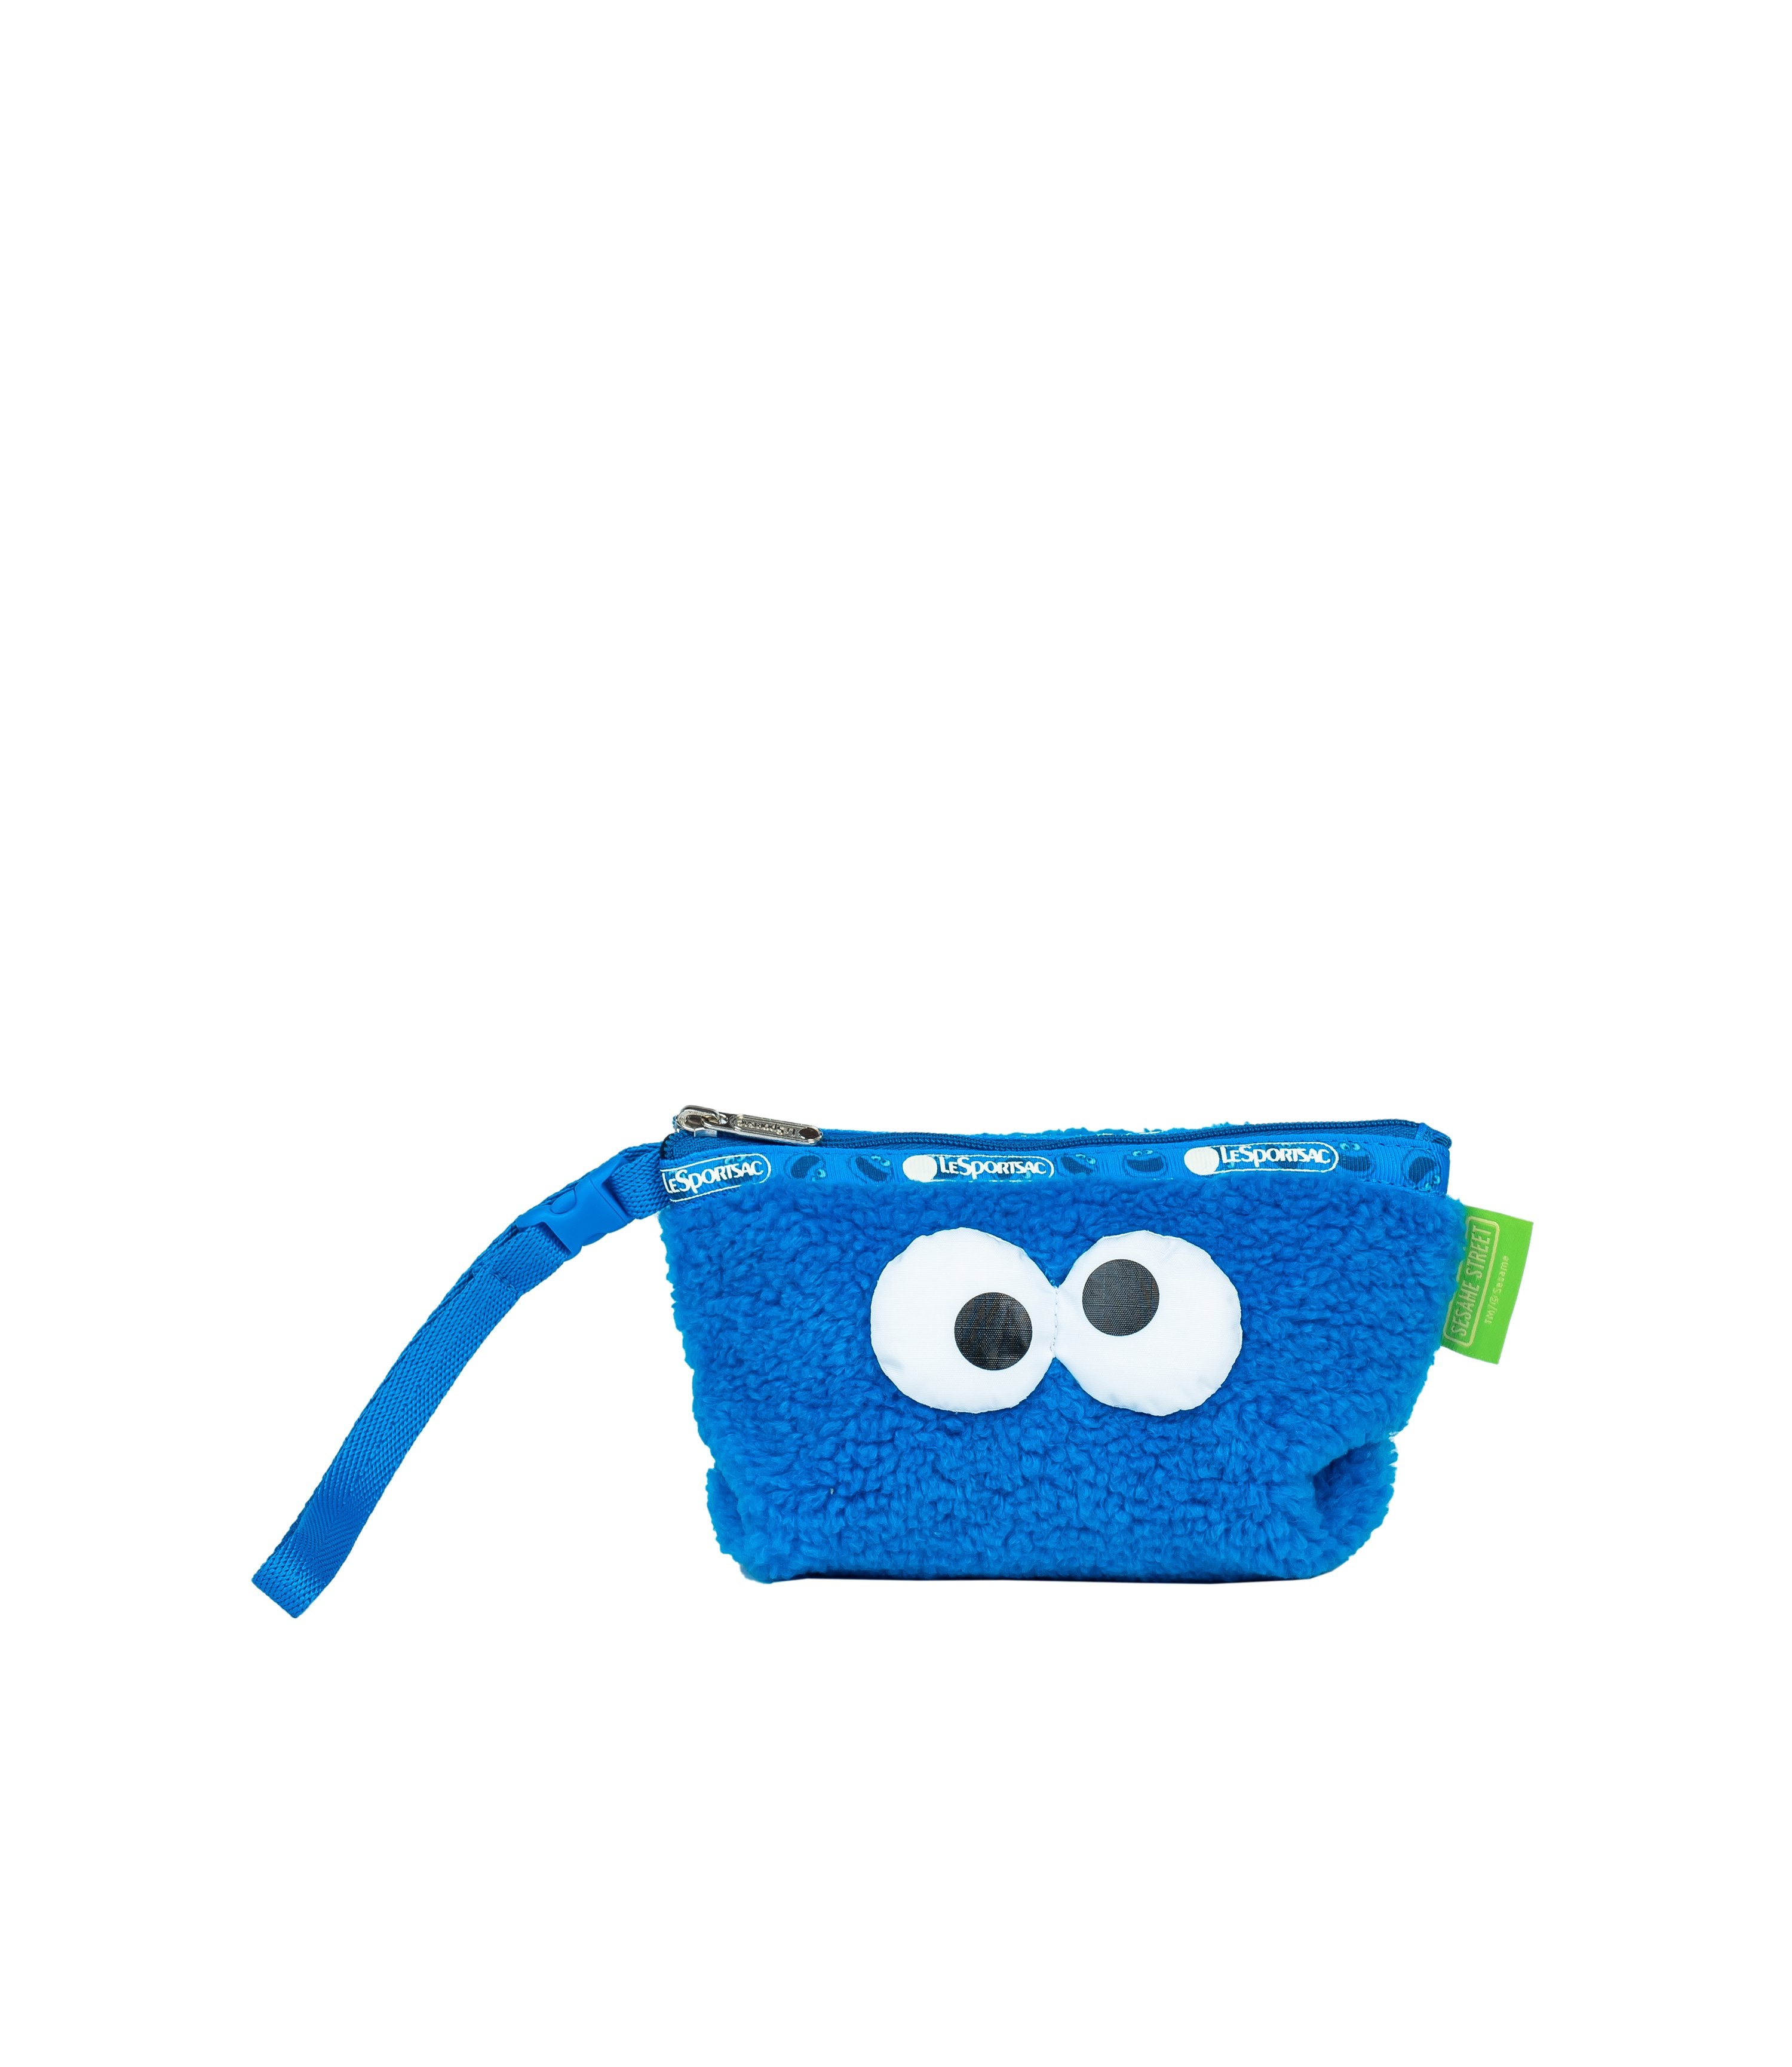 LeSportsac - Accessories - Small Cosmetic Wristlet - Cookie Monster